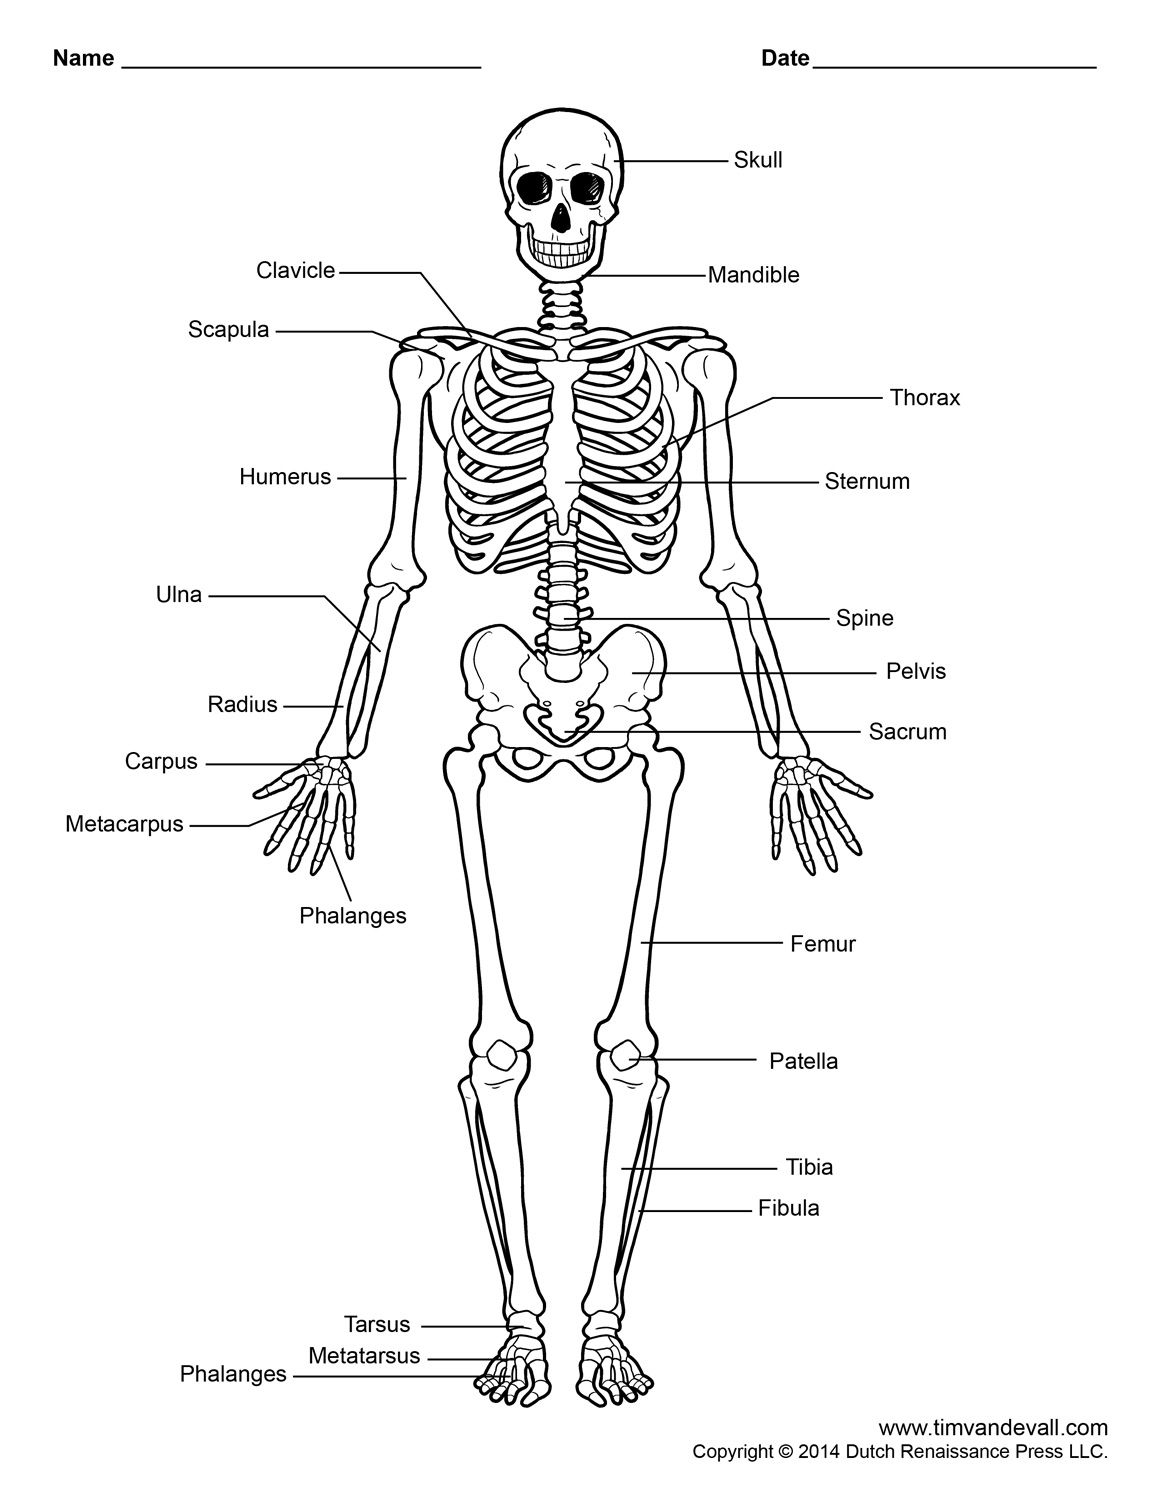 Labelled Human Skeleton Printable Human Skeleton Diagram Labeled